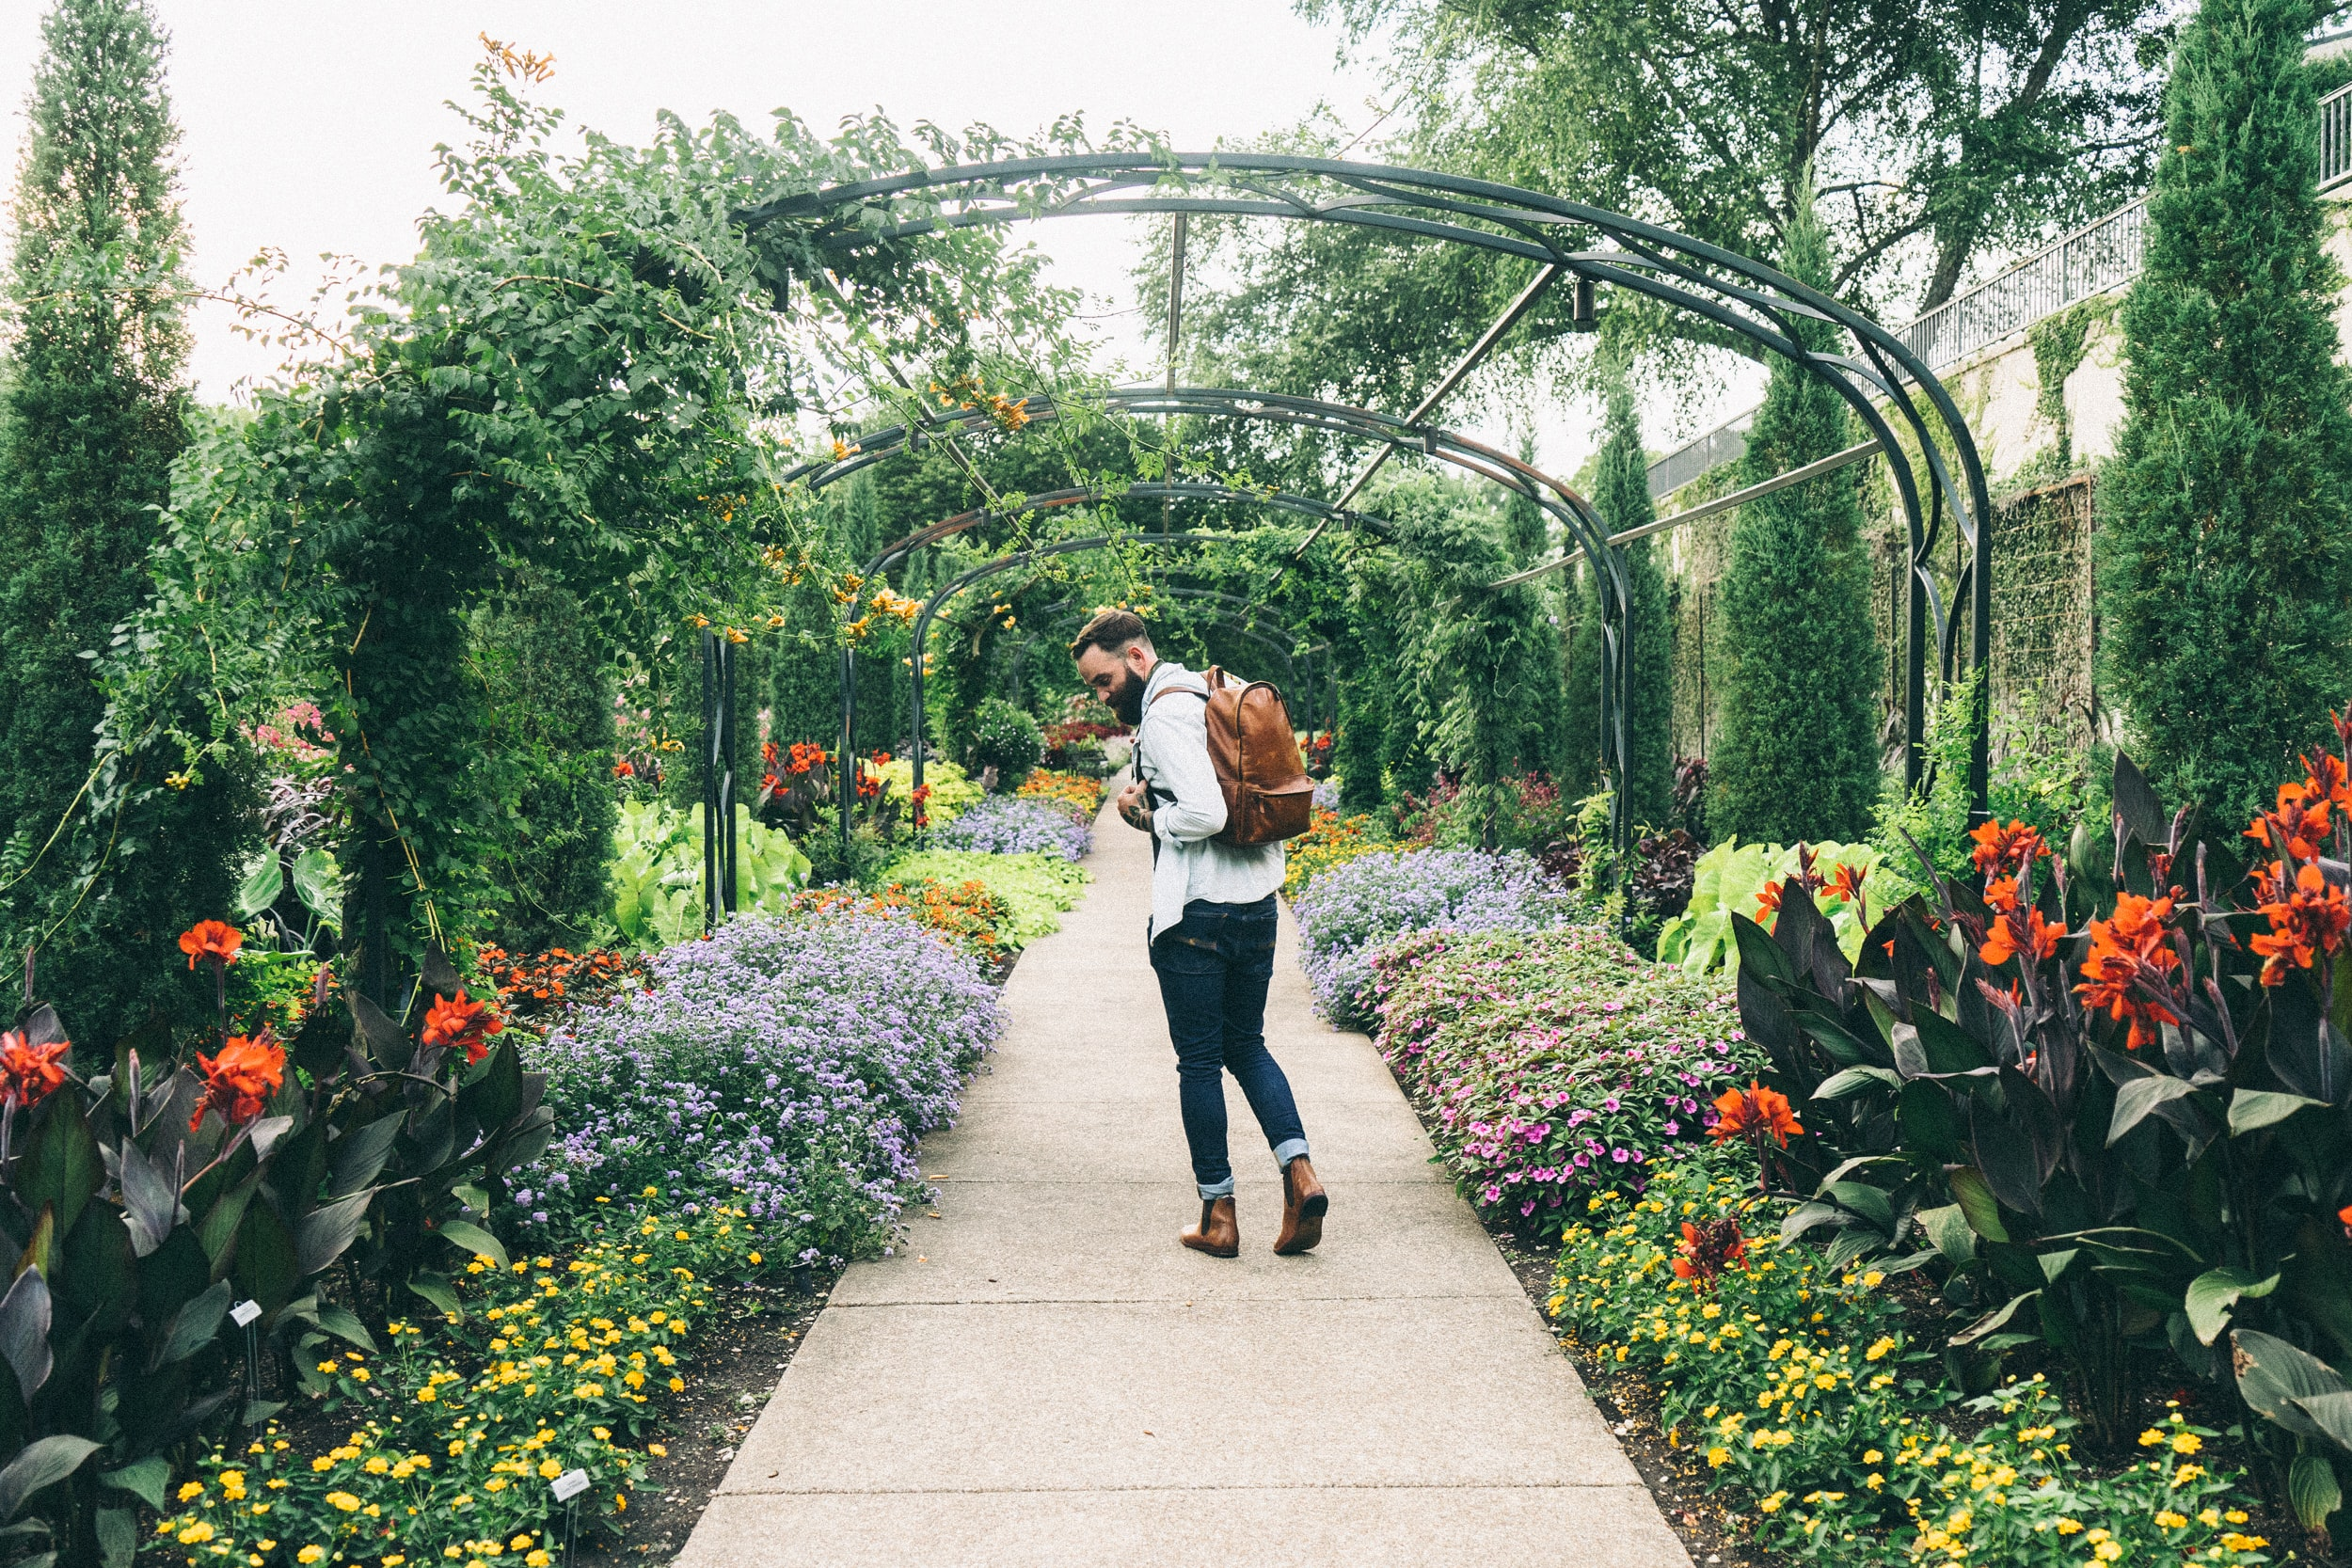 Bearded man walking through Cheekwood-Art & Gardens admiring the colorful flowers and the lush greenery